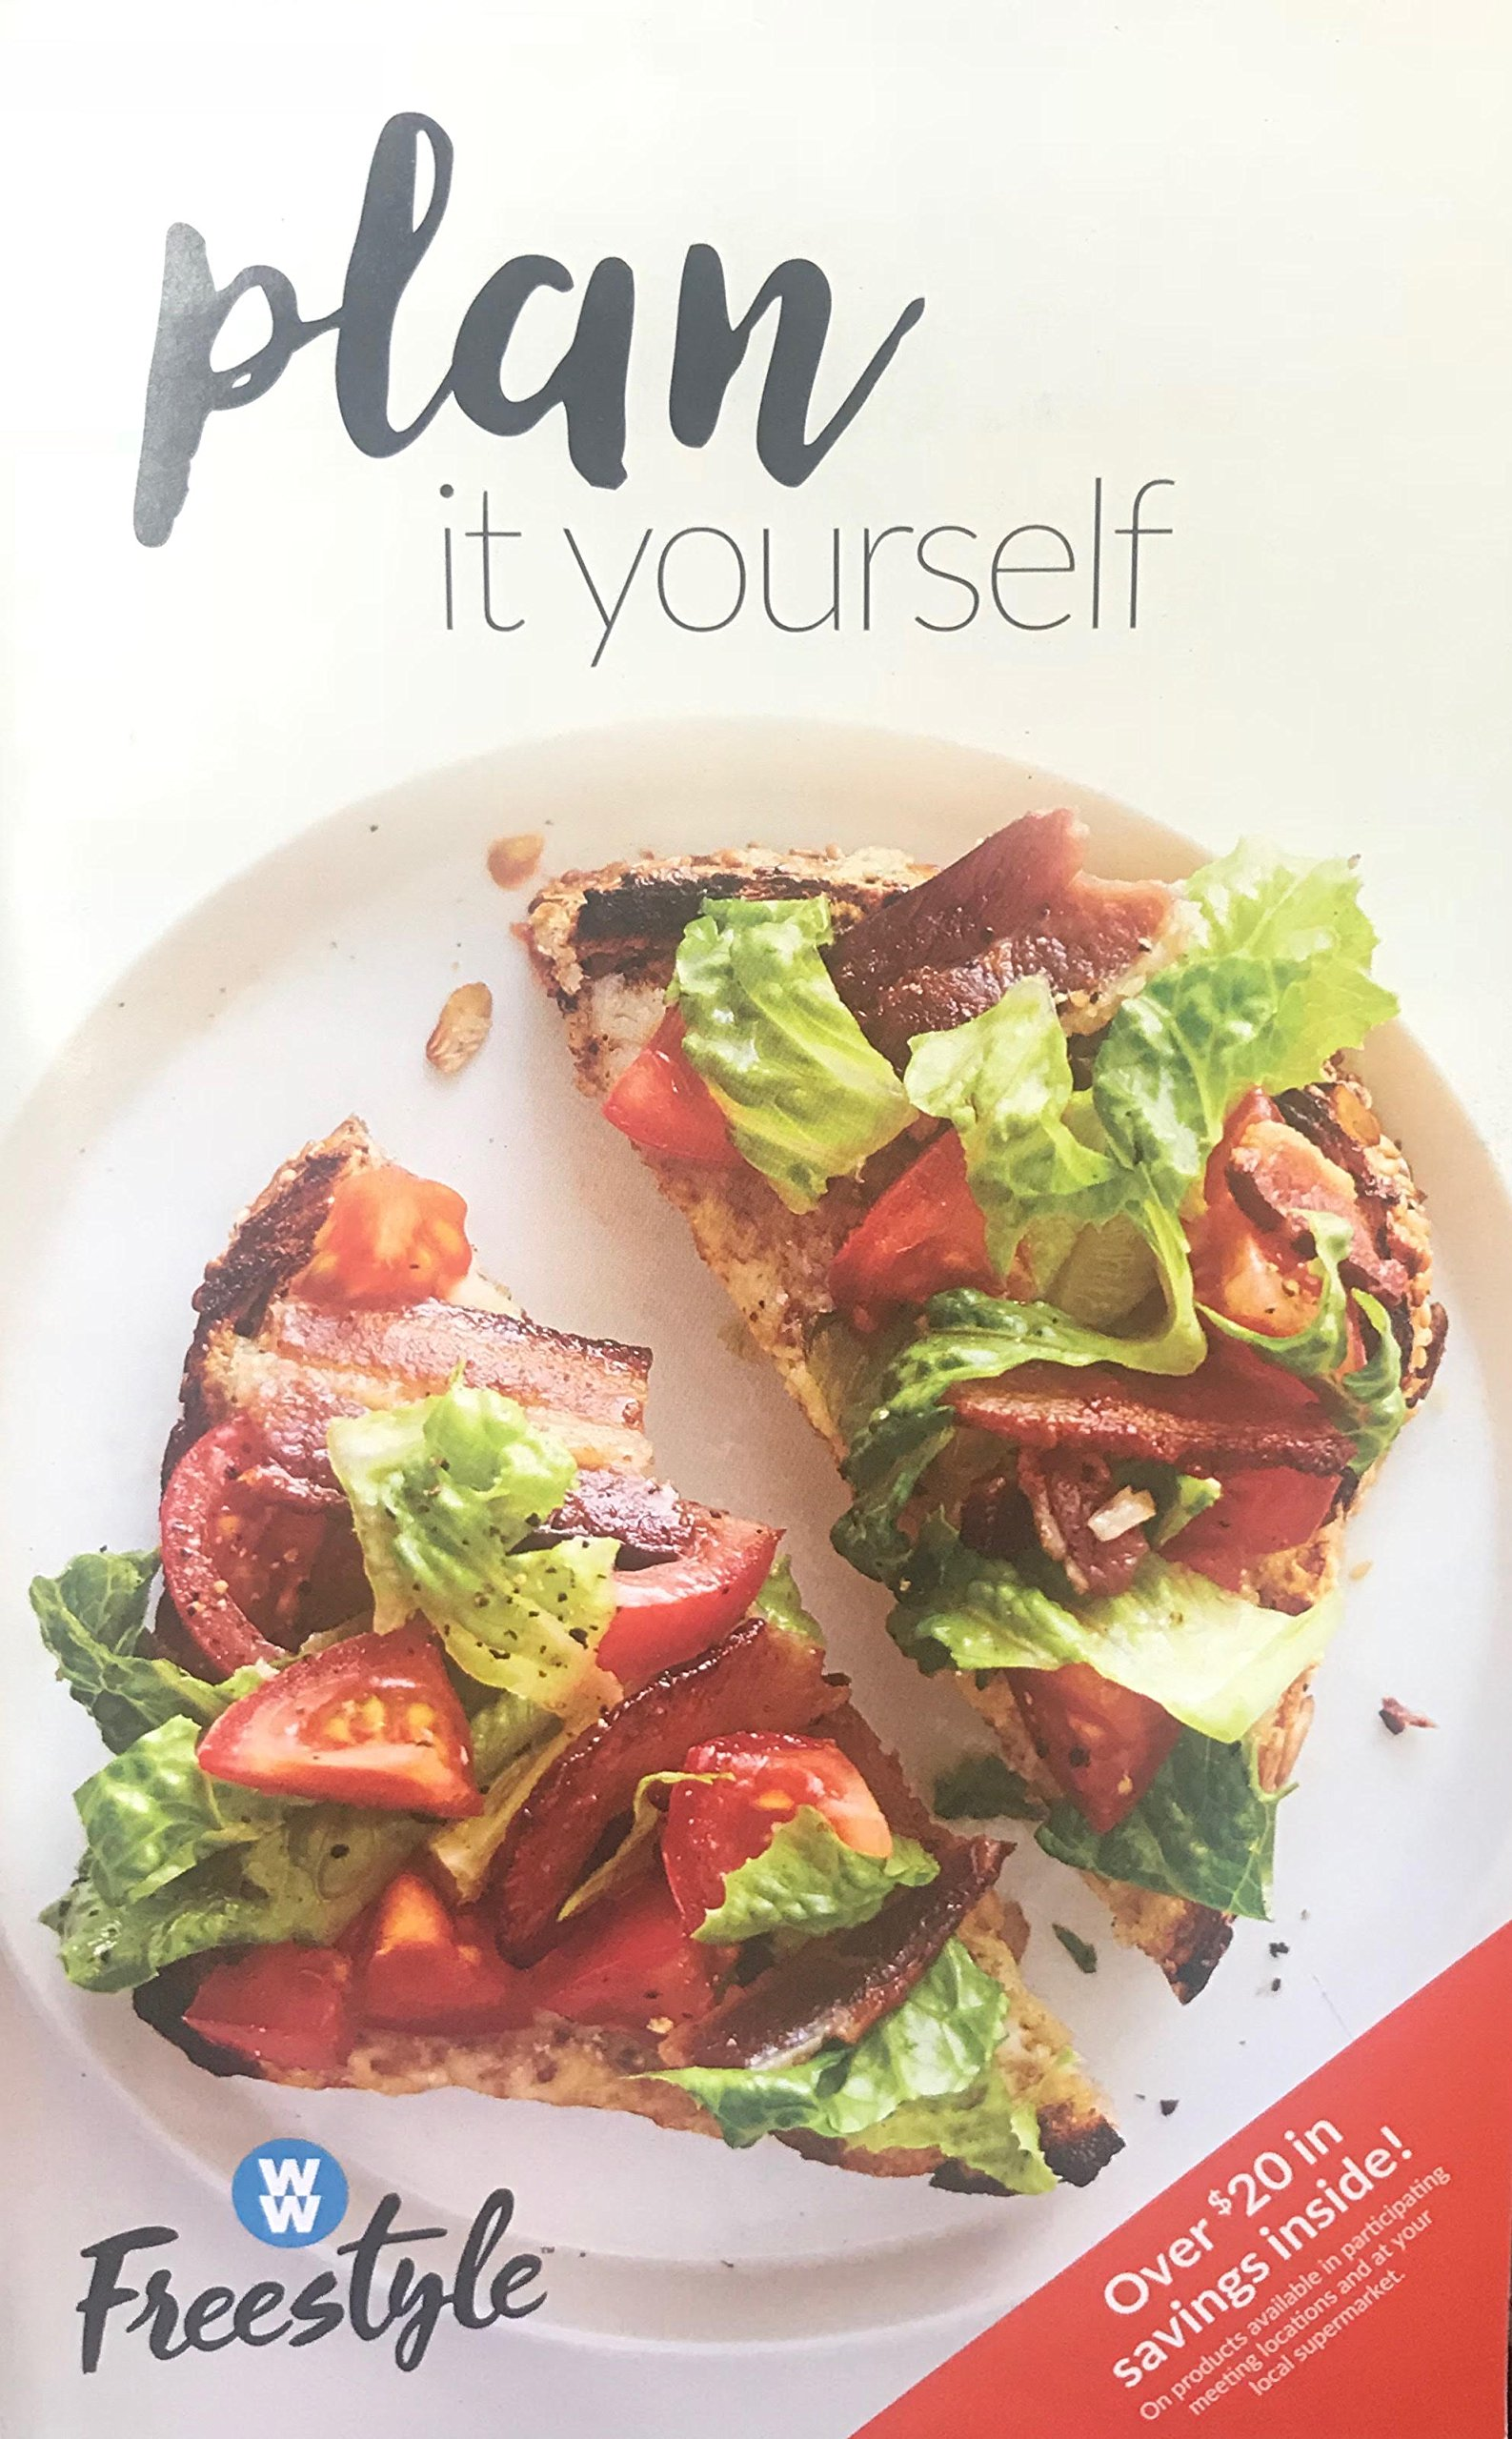 Weight Watchers 2018 Smart Points FREESTYLE - Plan It Yourself Guide Book